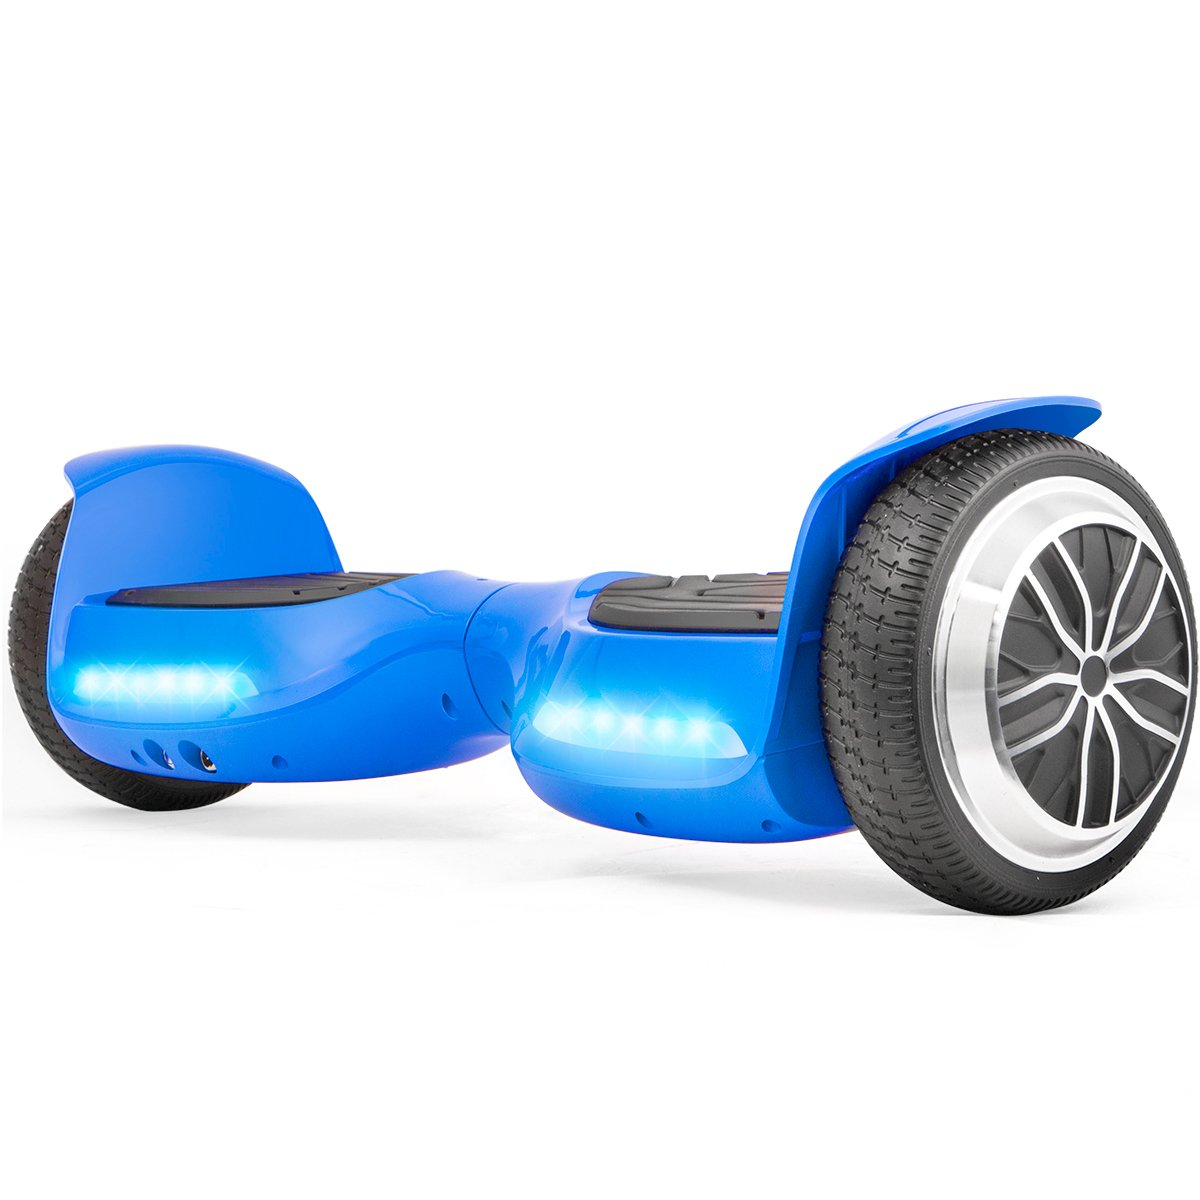 XtremepowerUS 6.5 Inch Self-Balancing Scooter w/ Bluetooth Speaker (Blue) by XtremepowerUS